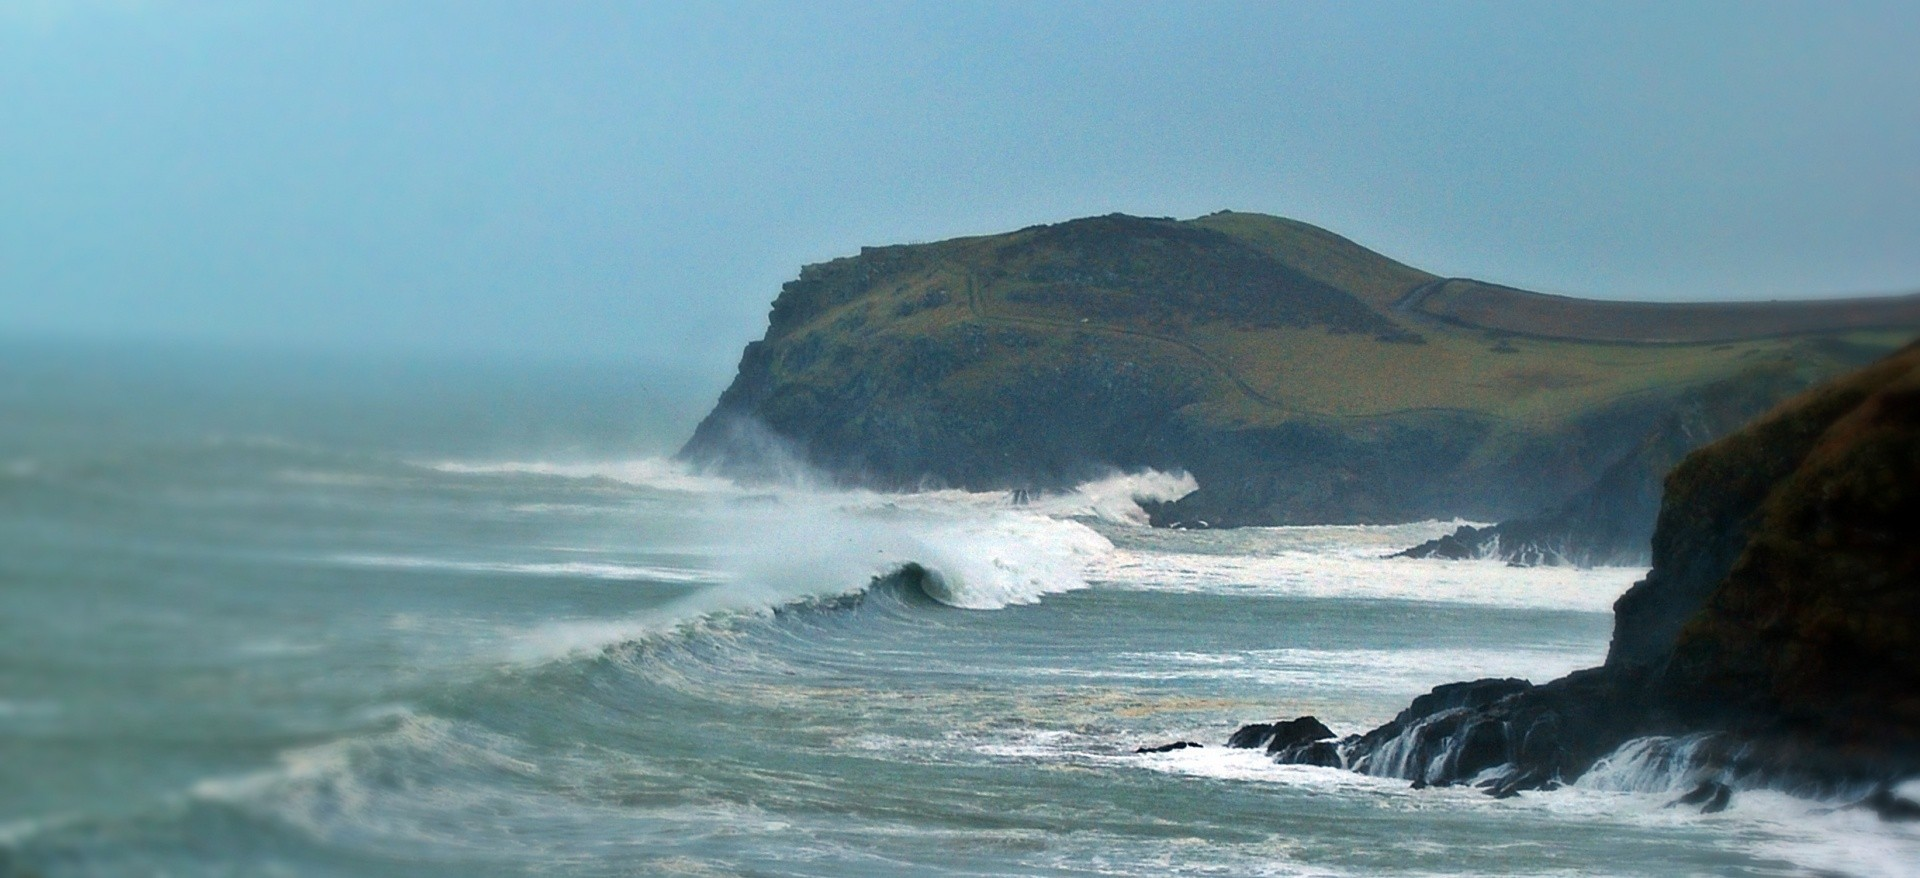 LPSurf's photo of Polzeath